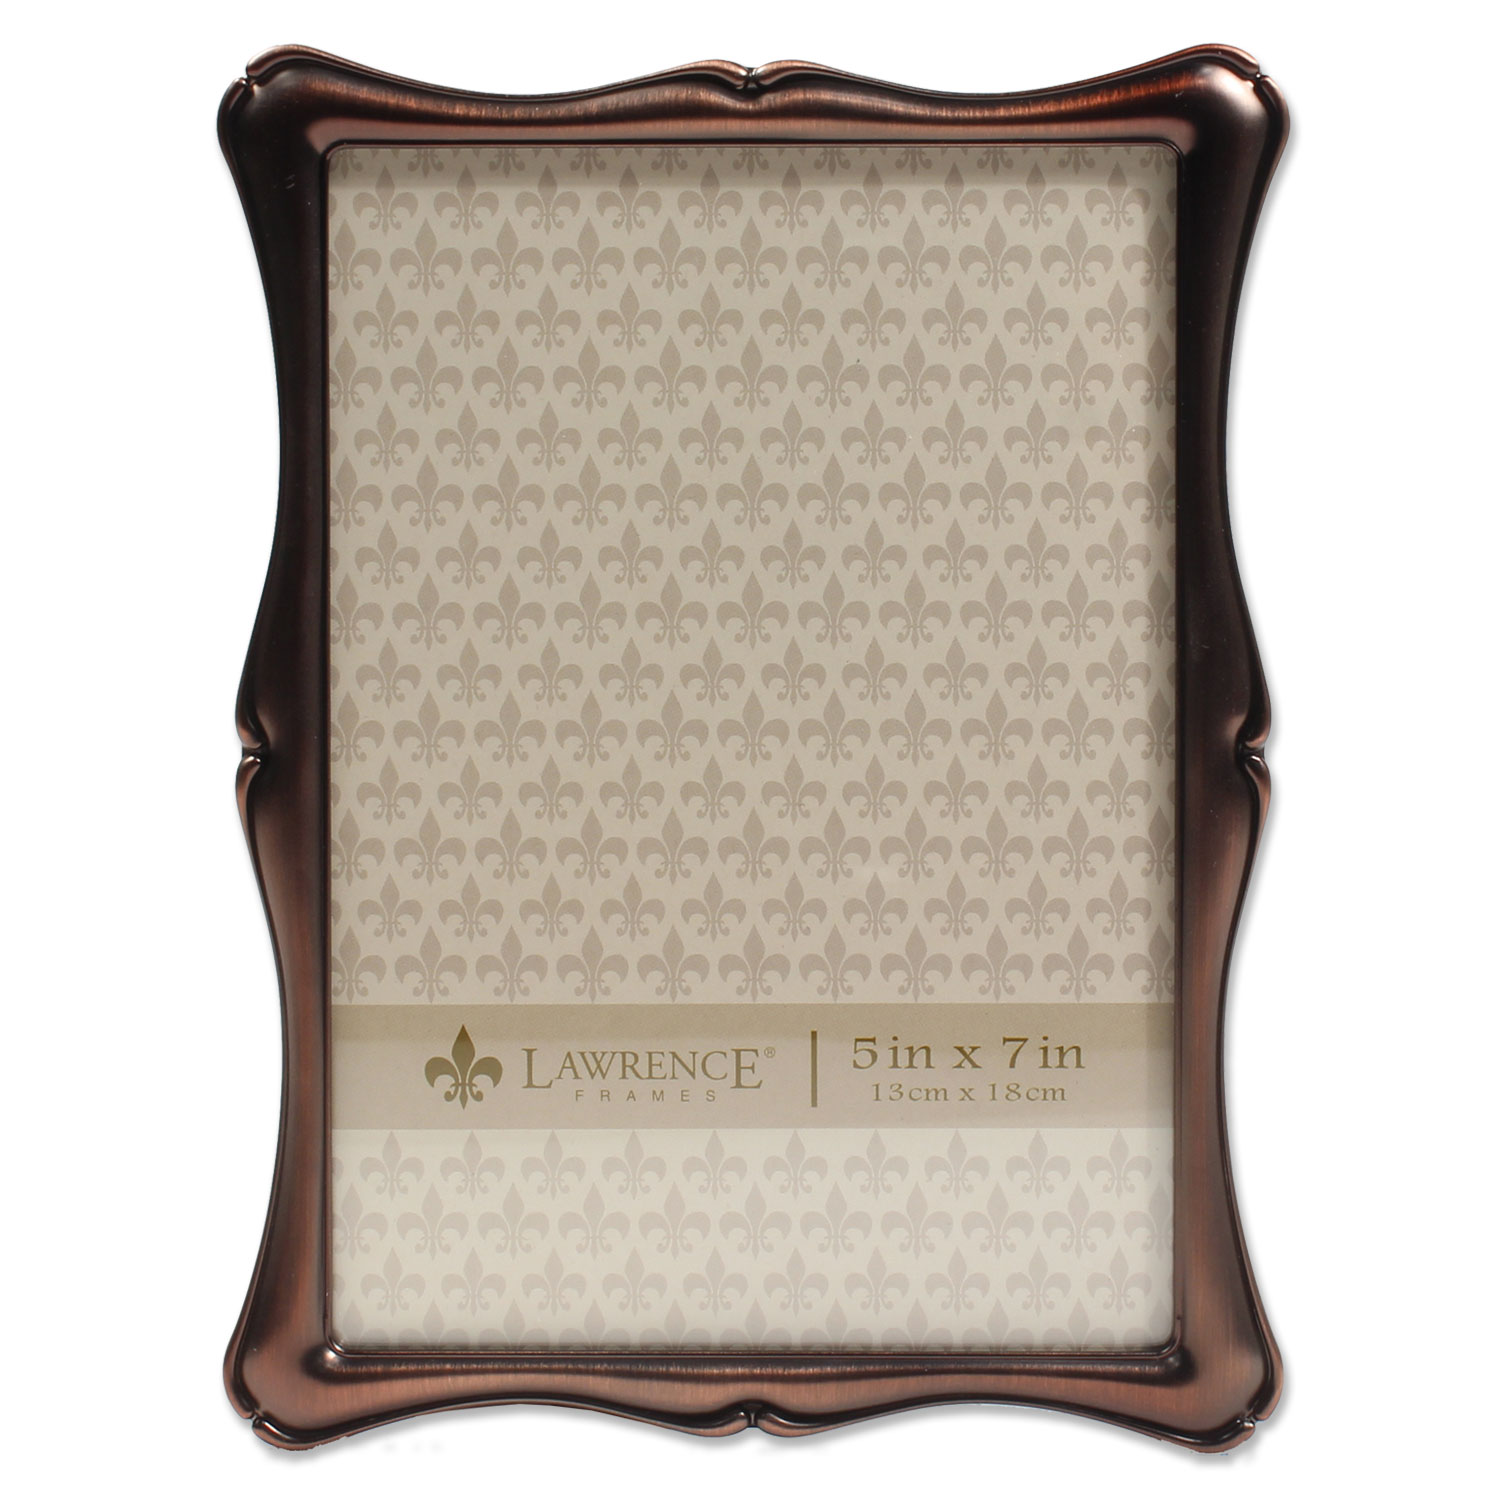 5x7 Oil Rubbed Bronze Romance Picture Frame by Lawrence Frames